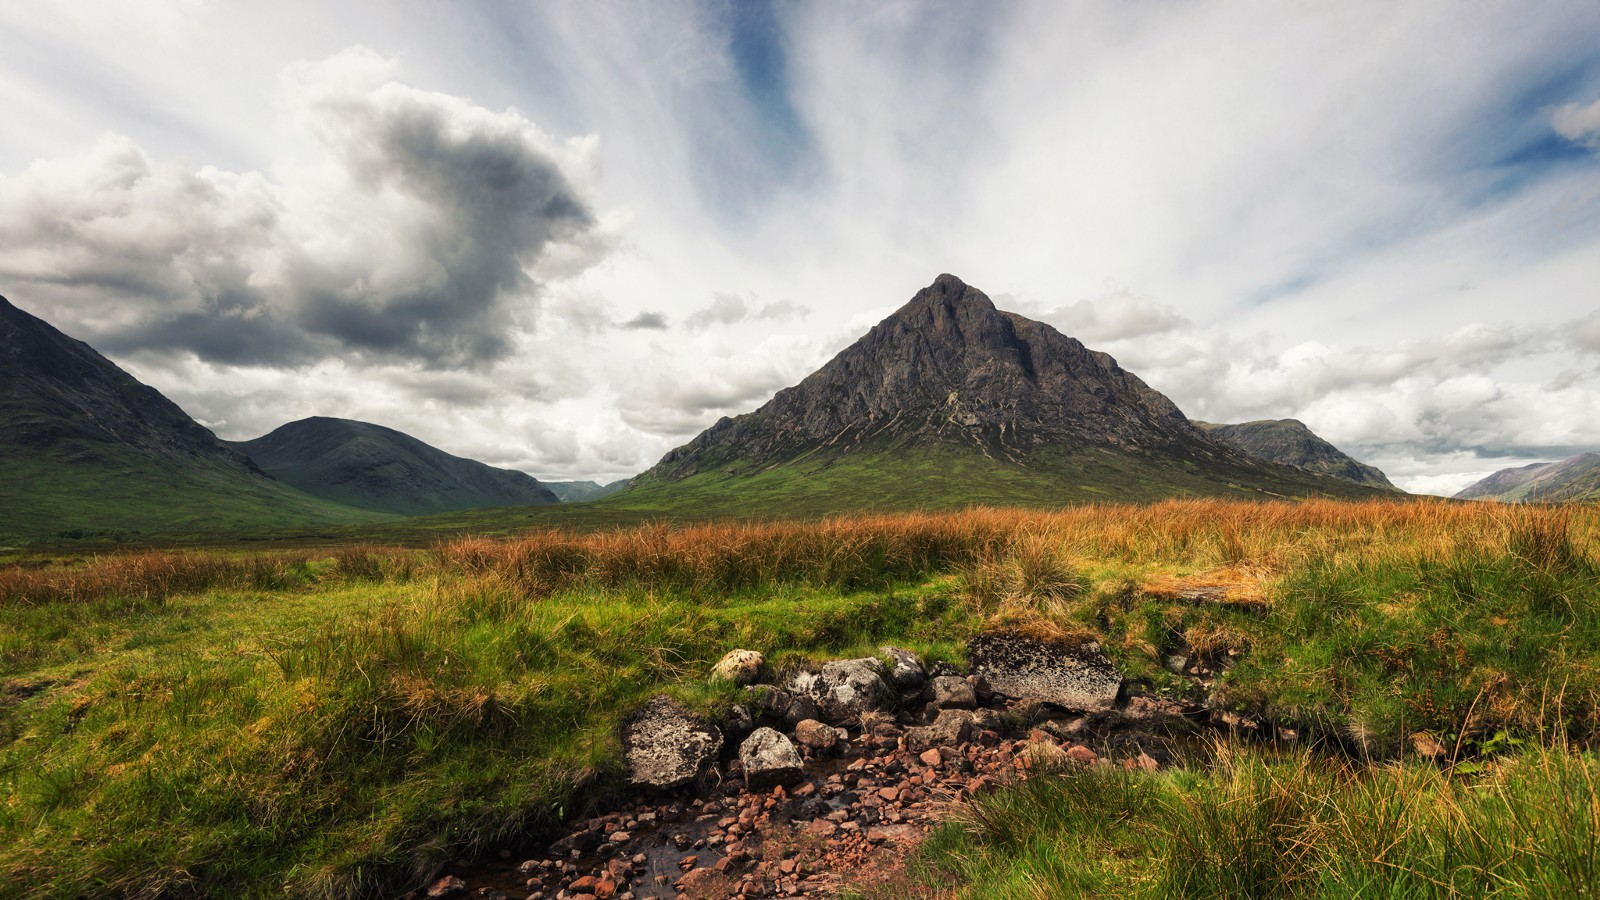 Buachaille Etive Mor at the entrance to Glen Coe, The Highlands, Scotland